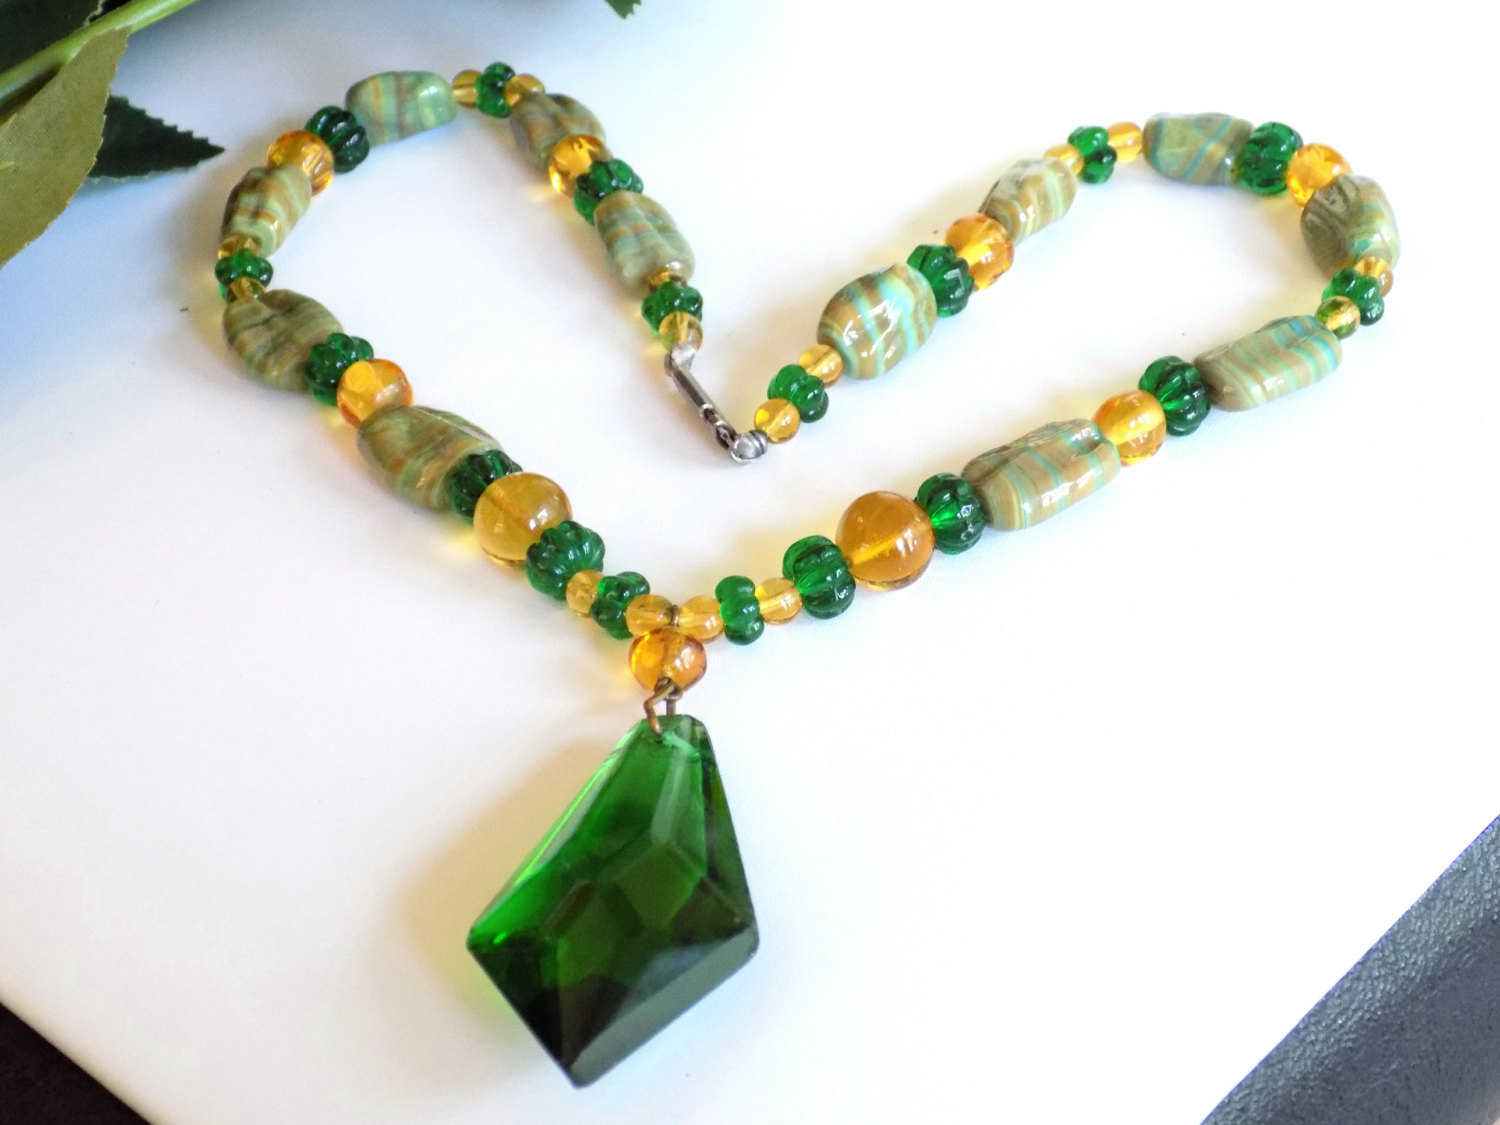 Vintage Glass Beaded Necklace Green & Gold Glass Beads Striped Beads Focal Glass